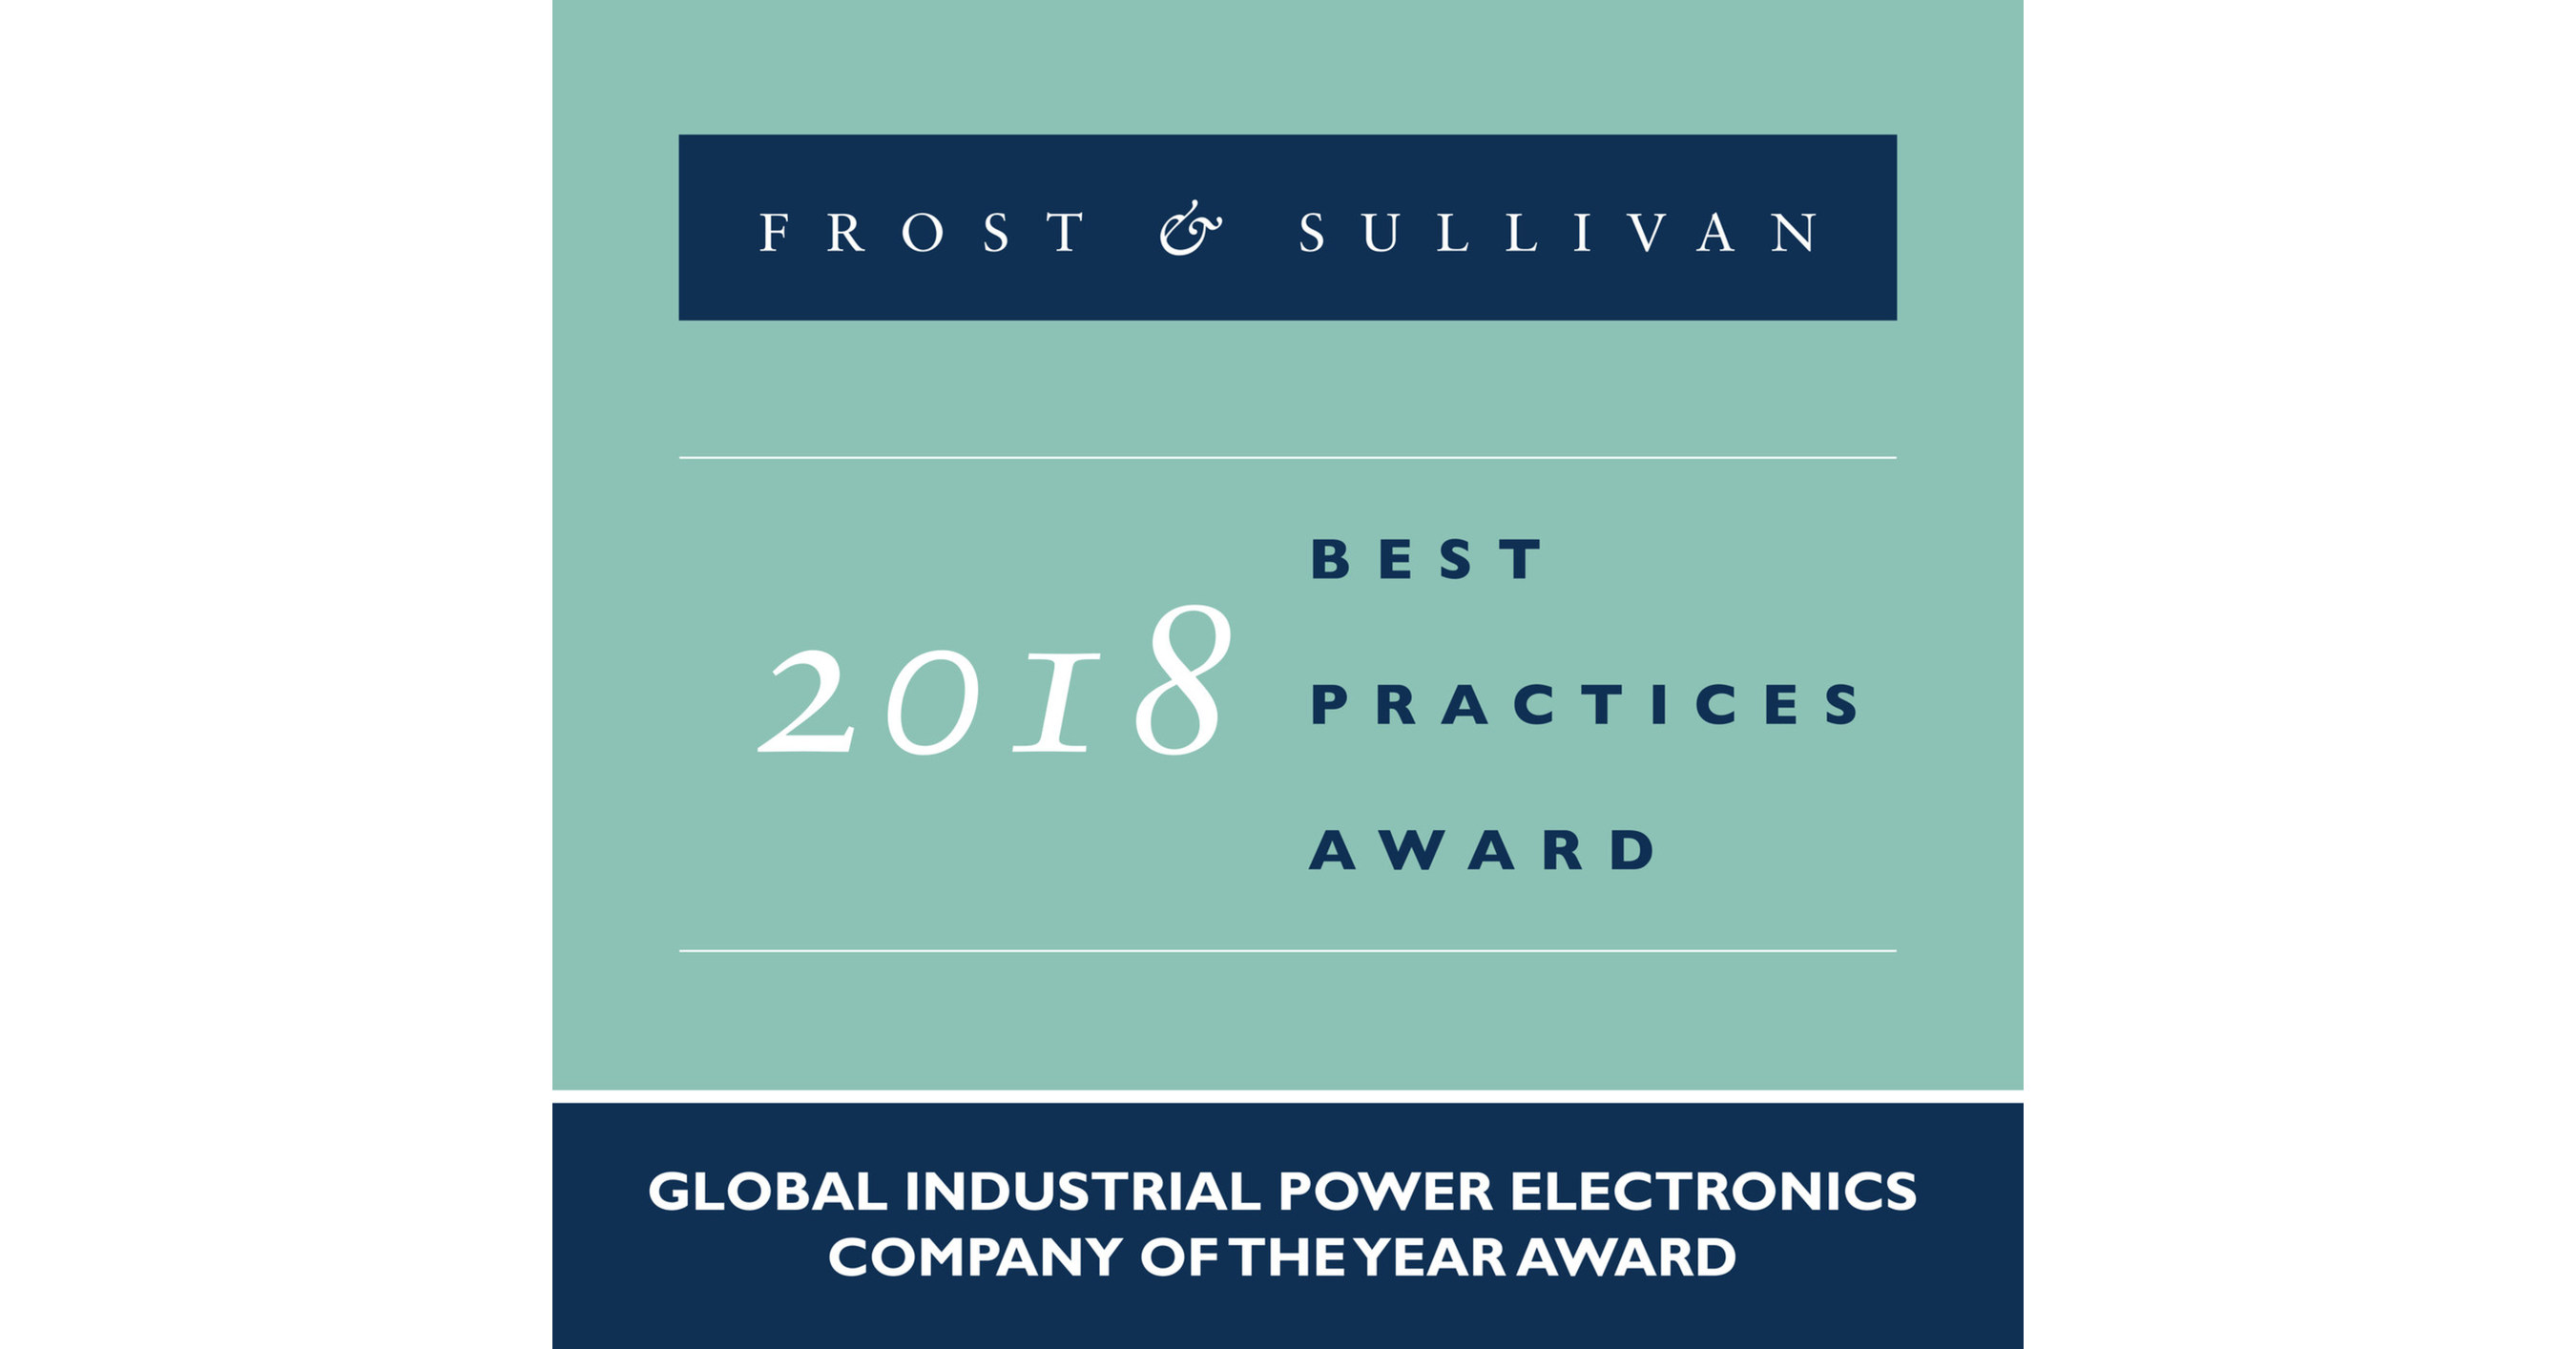 TMEIC's Innovation-backed Growth in the Industrial Power Electronics Market Commended by Frost & Sullivan